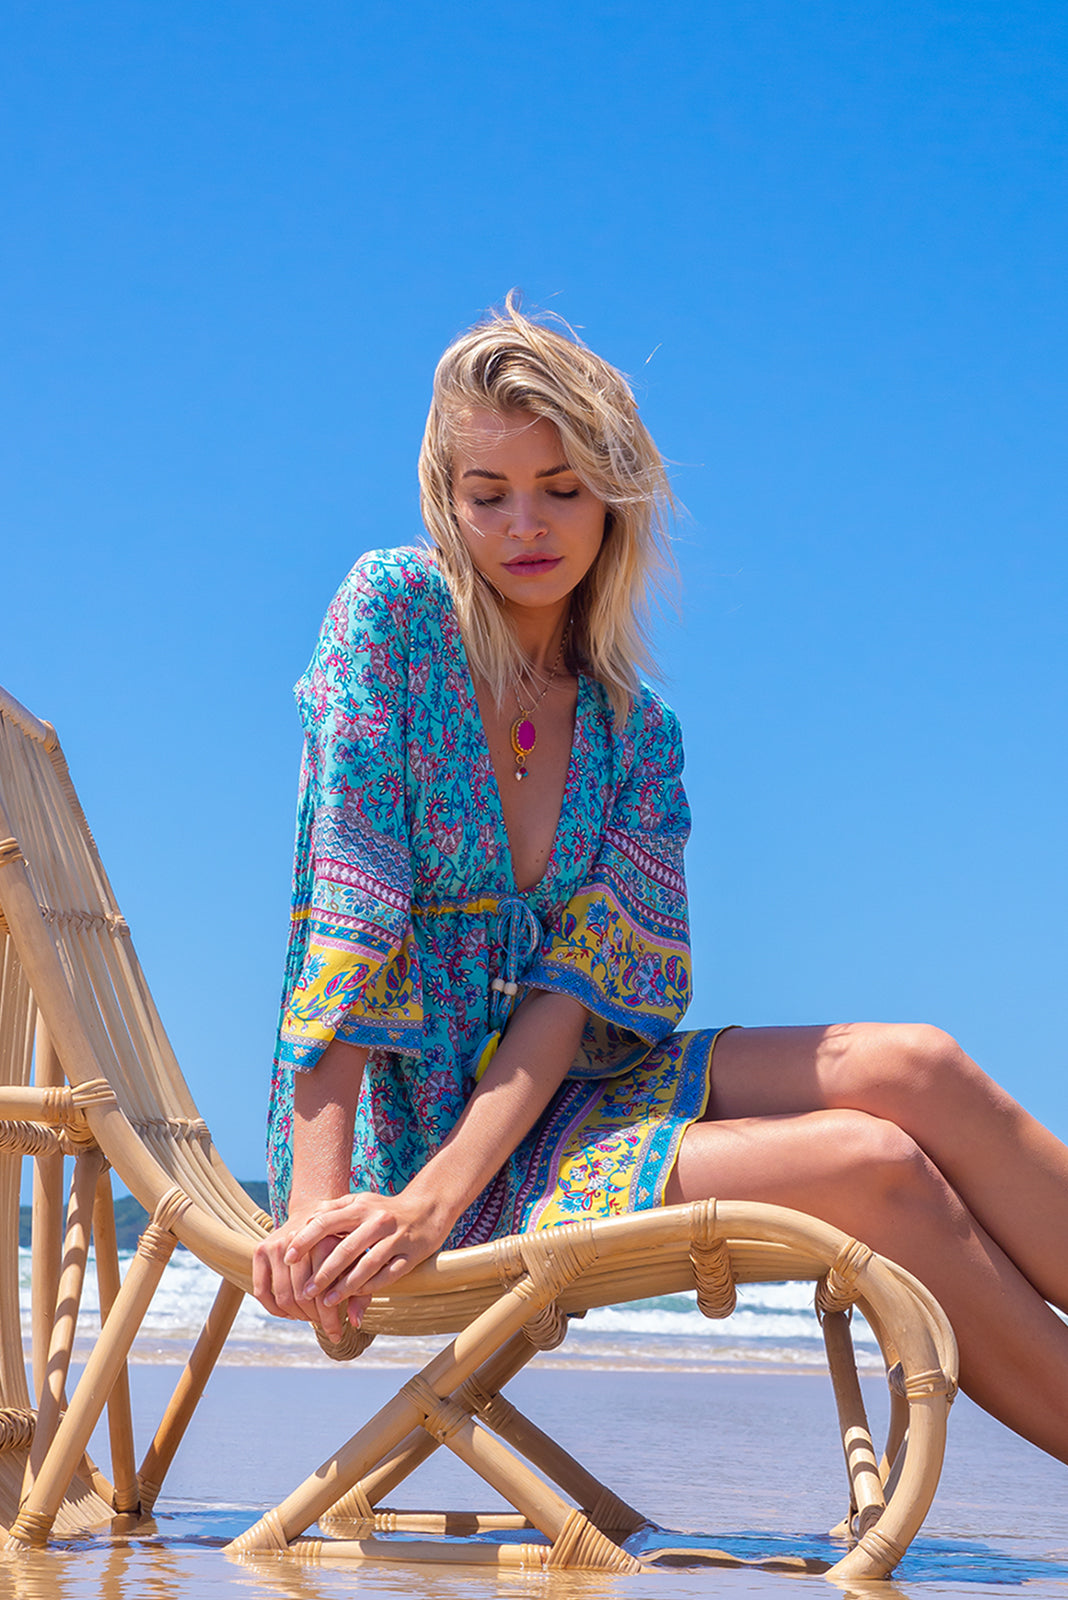 The Layla Sea and Sun Mini Dress features deep V plunge neckline, caftan sleeves, adjustable drawstring waist, embroidered multicoloured drawstring with tassels and beads, side pockets and 100% rayon in blue base with fun print and yellow border feature.